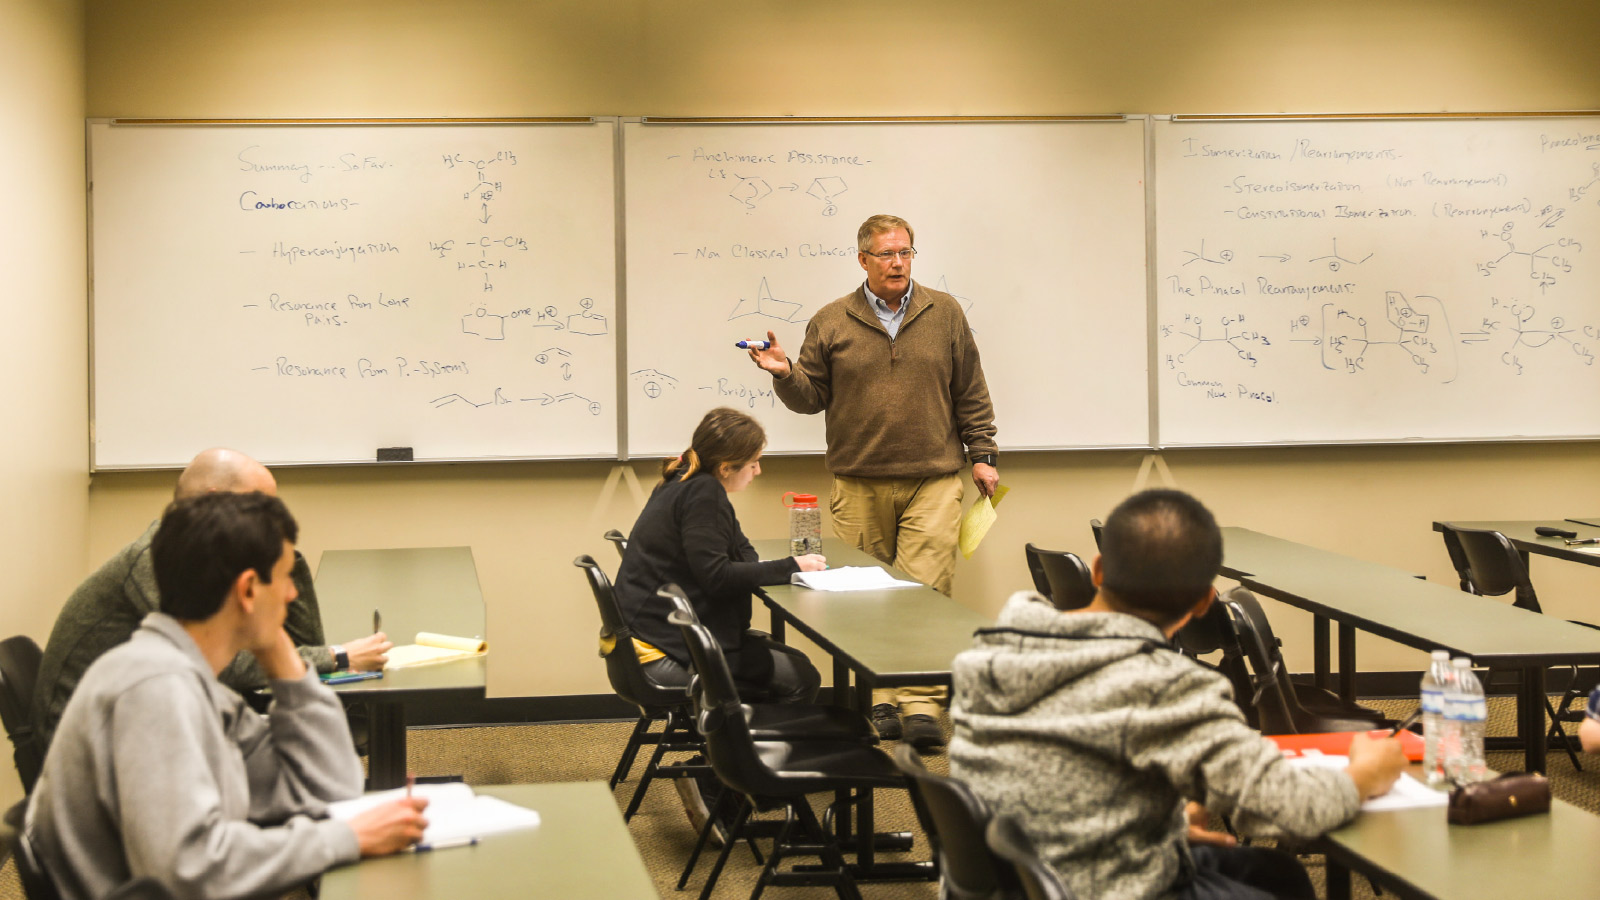 Dr. John Wood teaching students